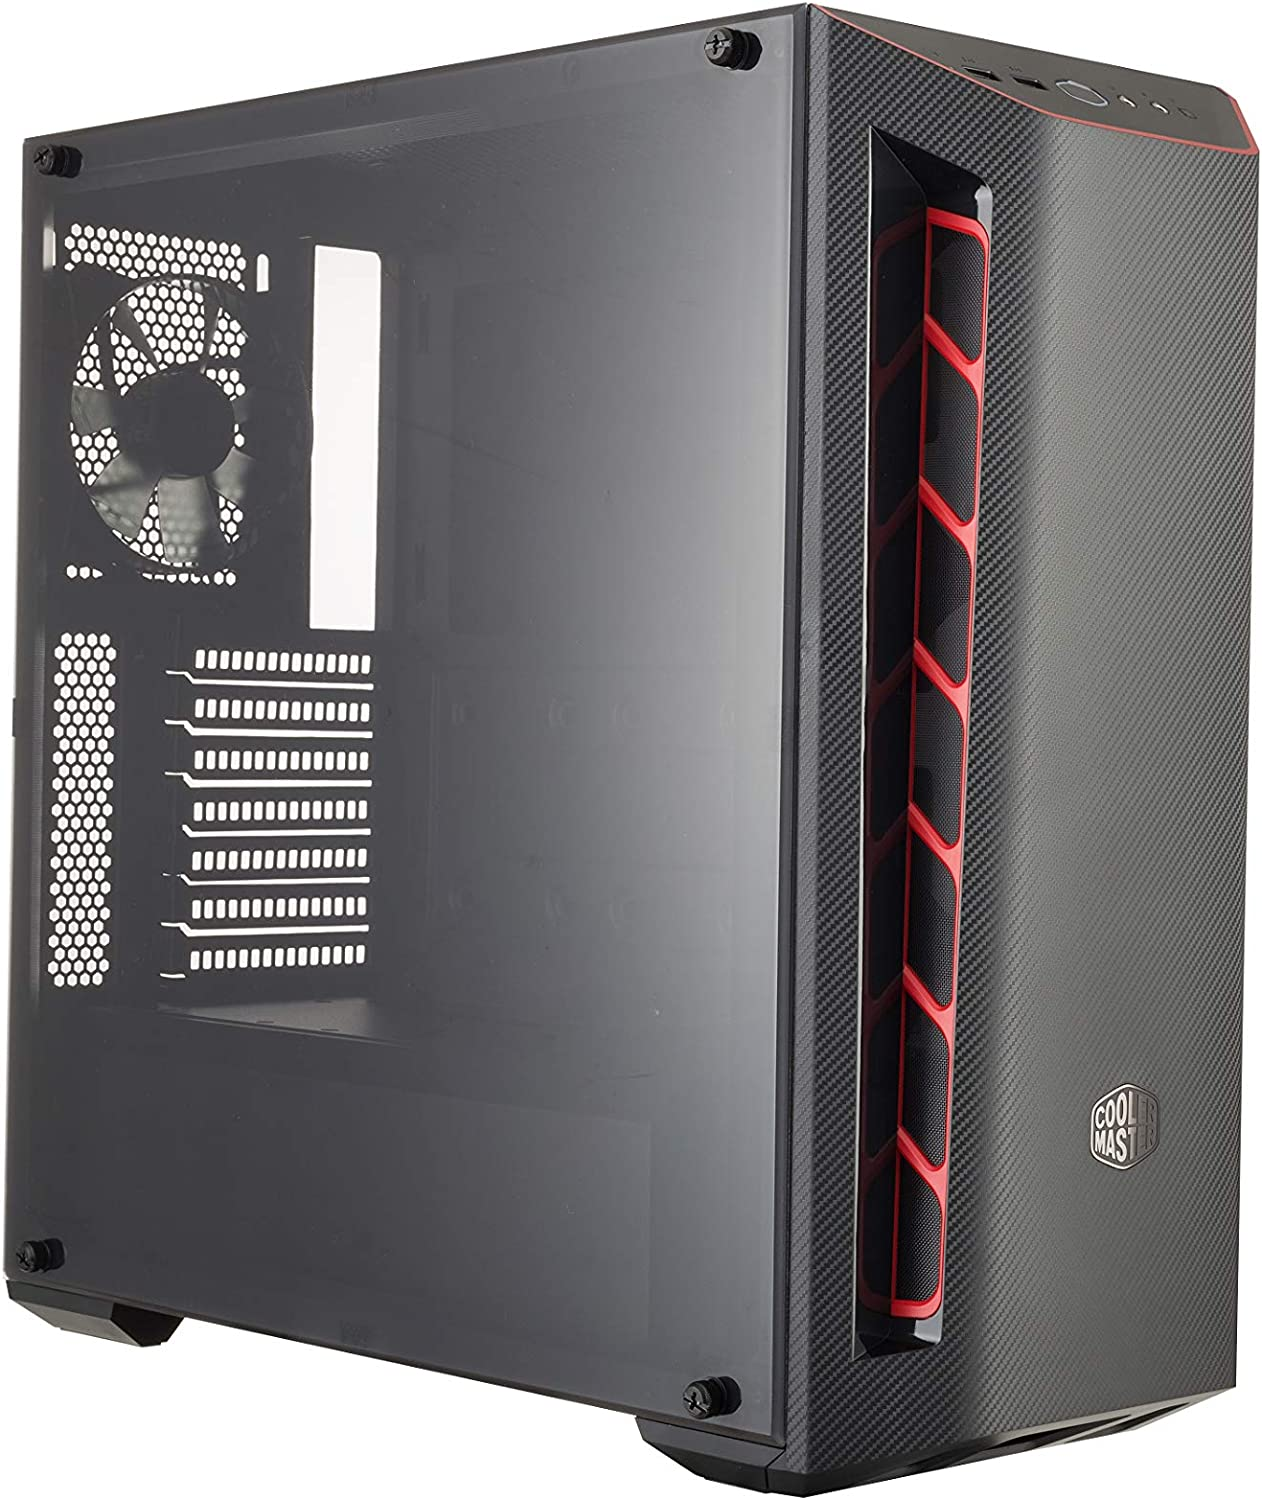 Cooler Master Computer Case Components Other MCB-B510L-KANN-S00